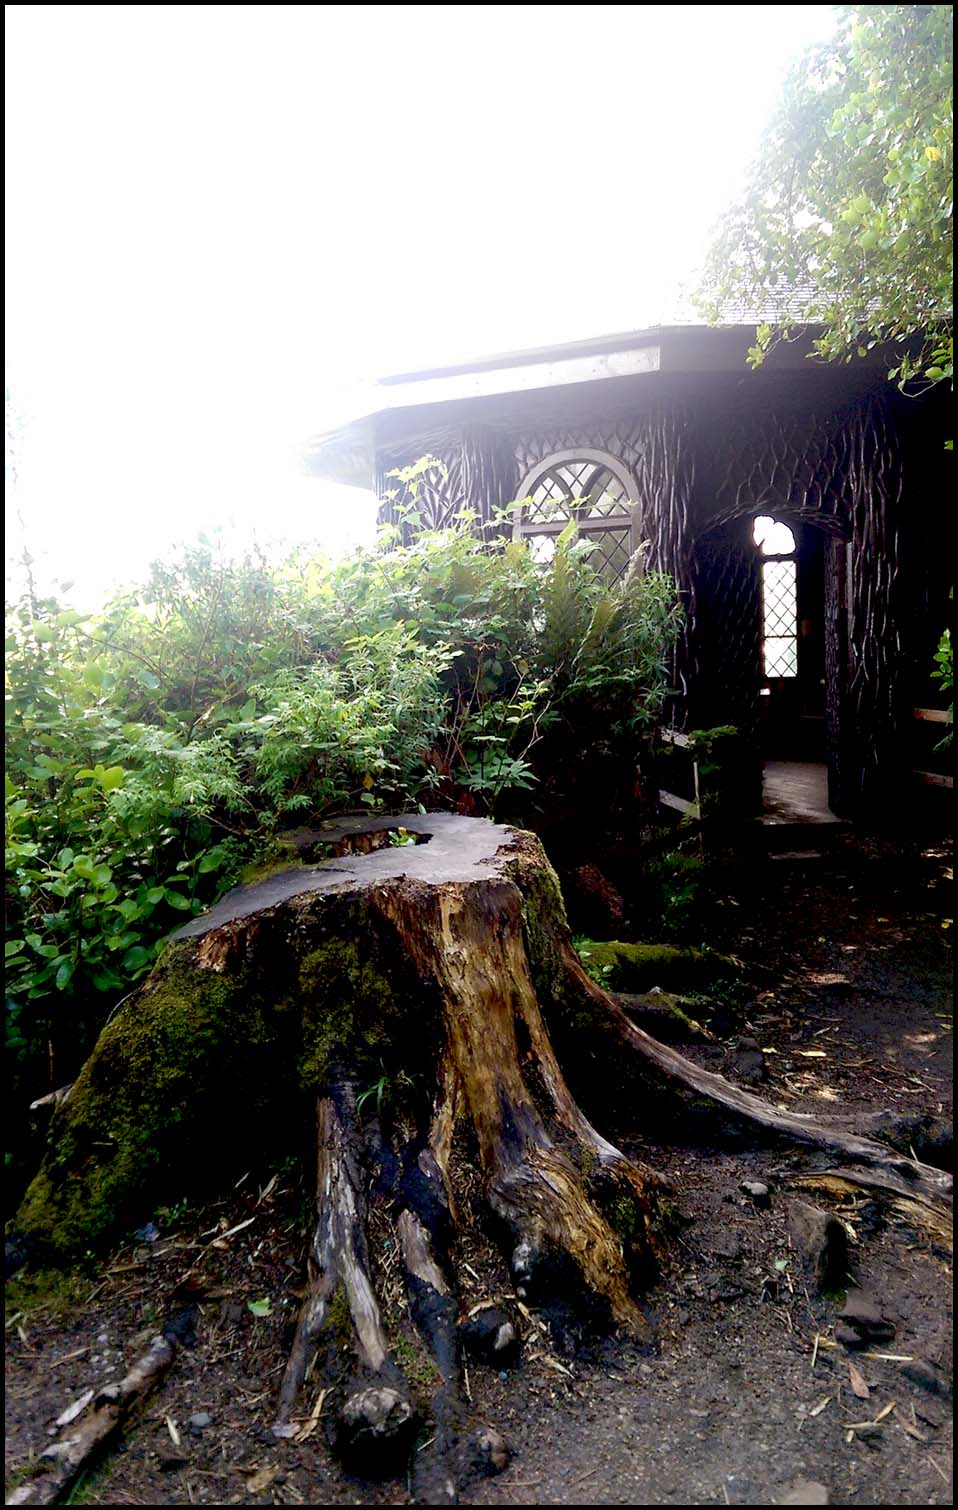 Bavarian Summerhouse, Brodick Castle, Arran